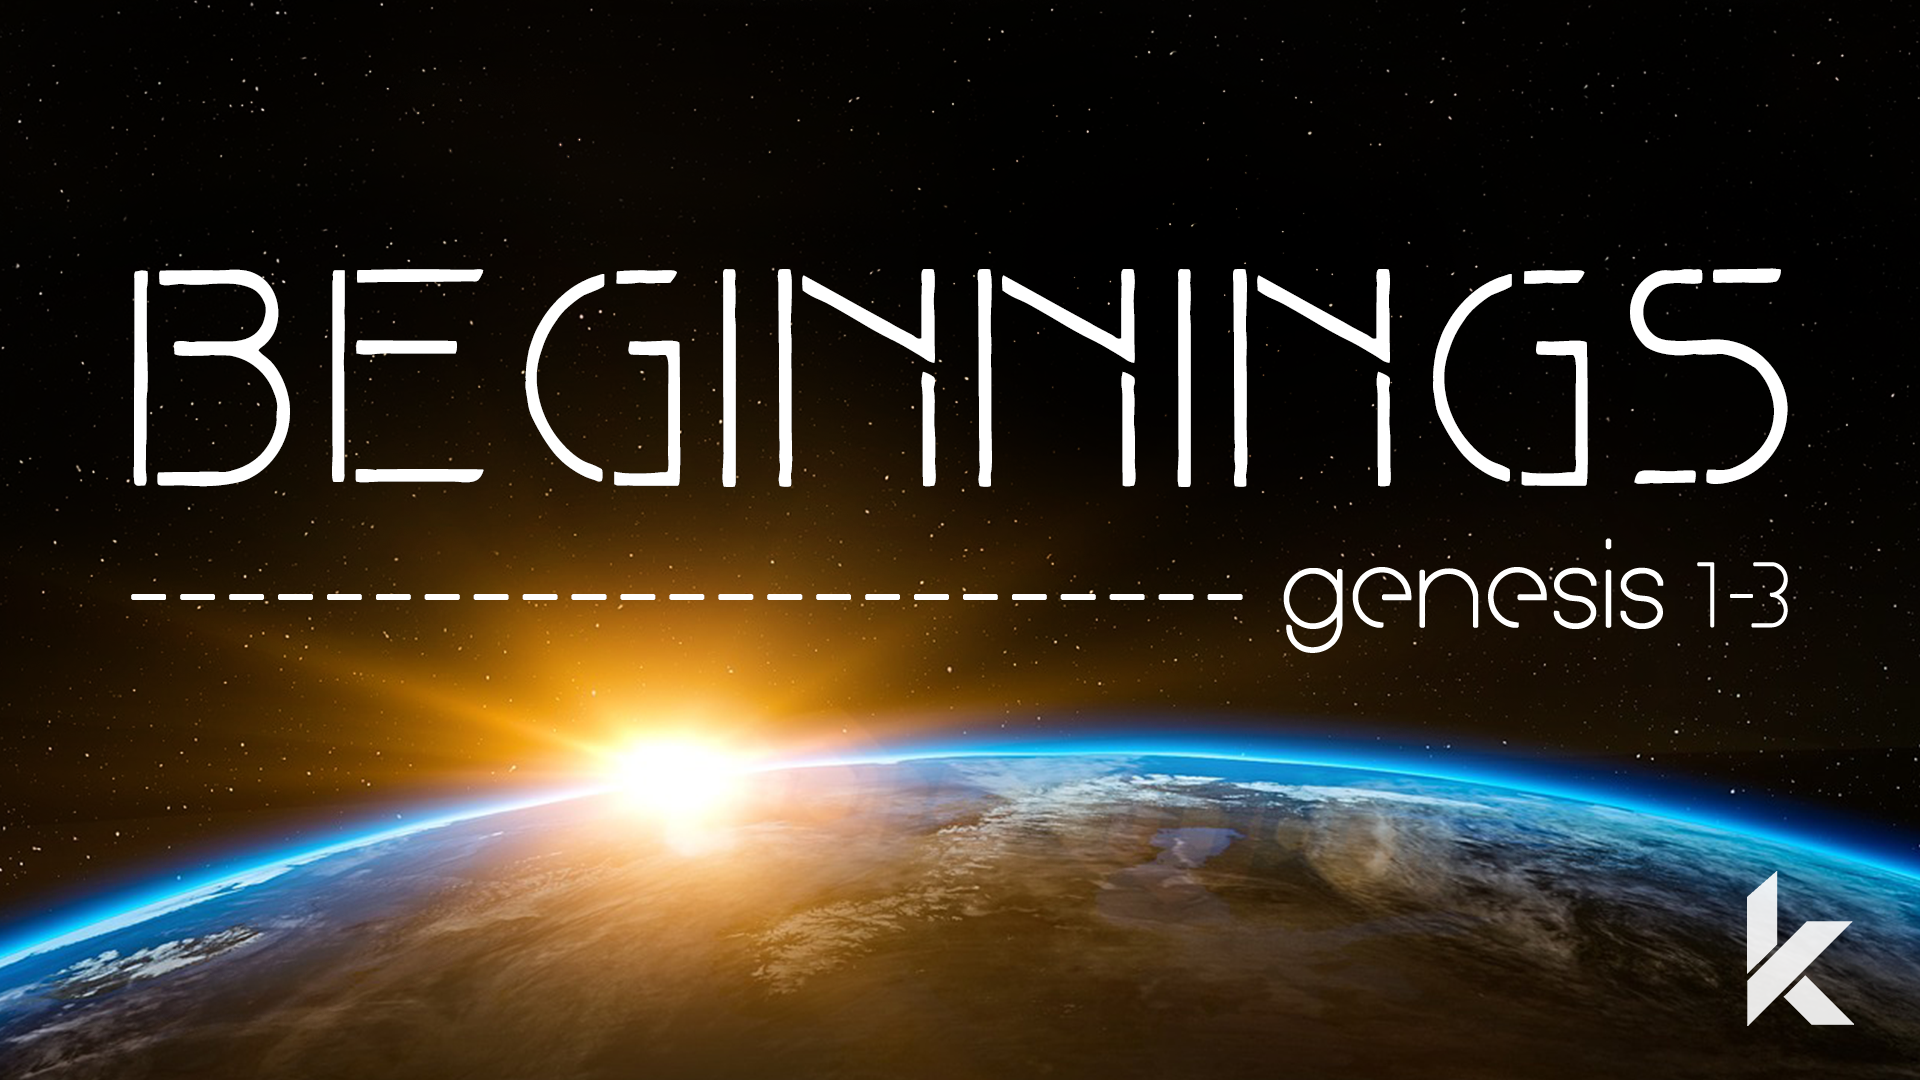 beginnings-slide-kcc.png